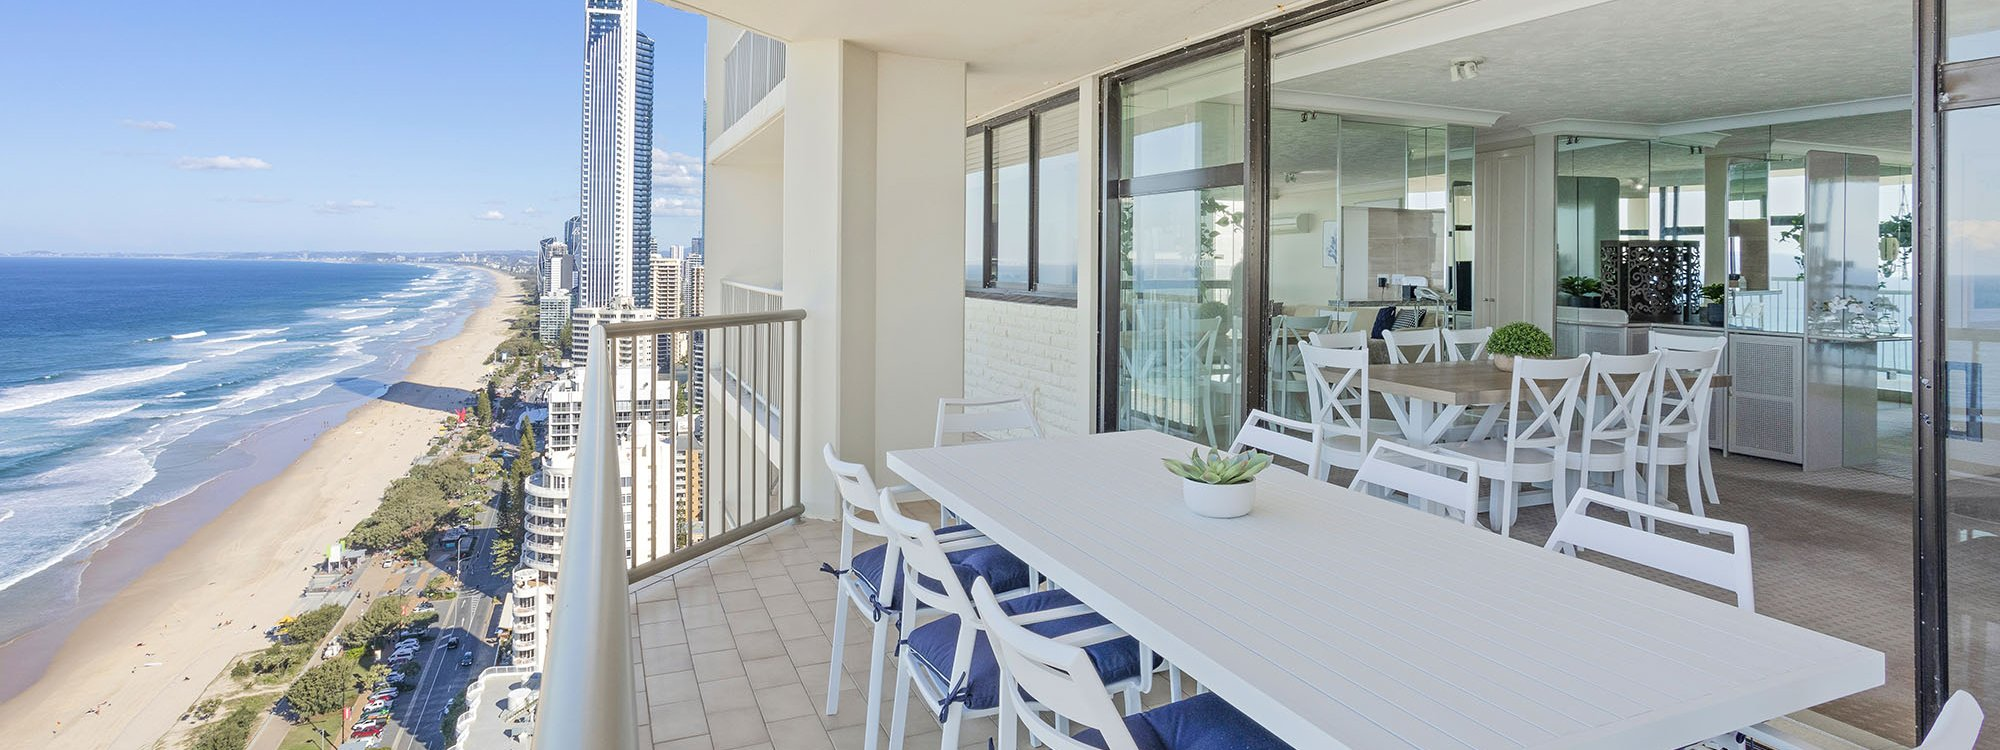 Northstar at Imperial Surf - Gold Coast - Balcony Dining and View c